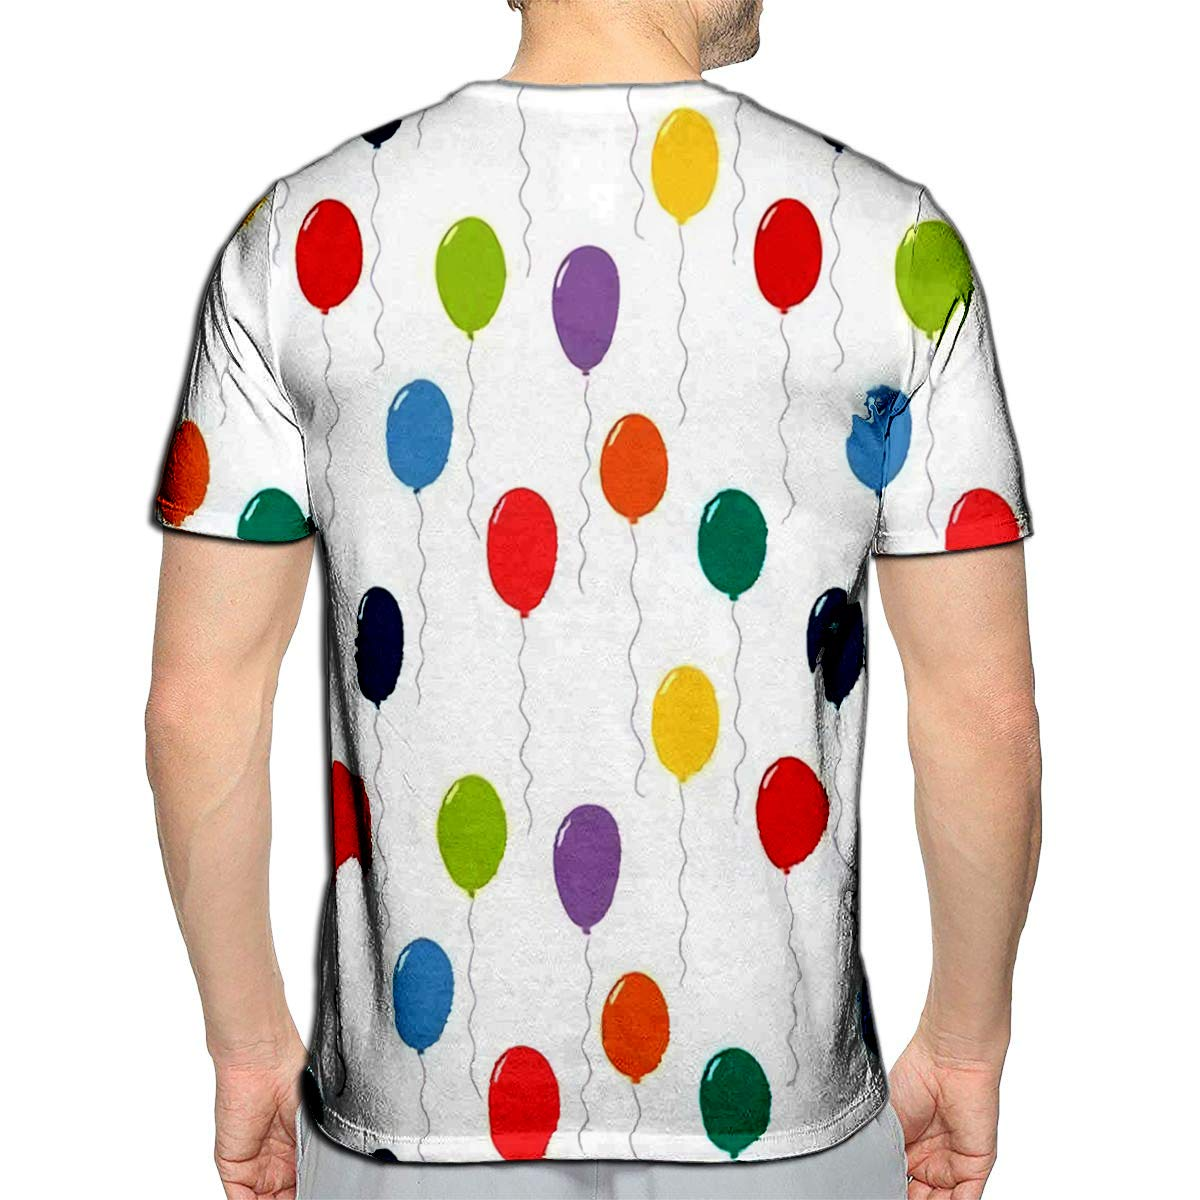 YILINGER 3D Printed T Shirts Colorful Flying Balloons Design Concep Casual Mens Hipster Top Tees